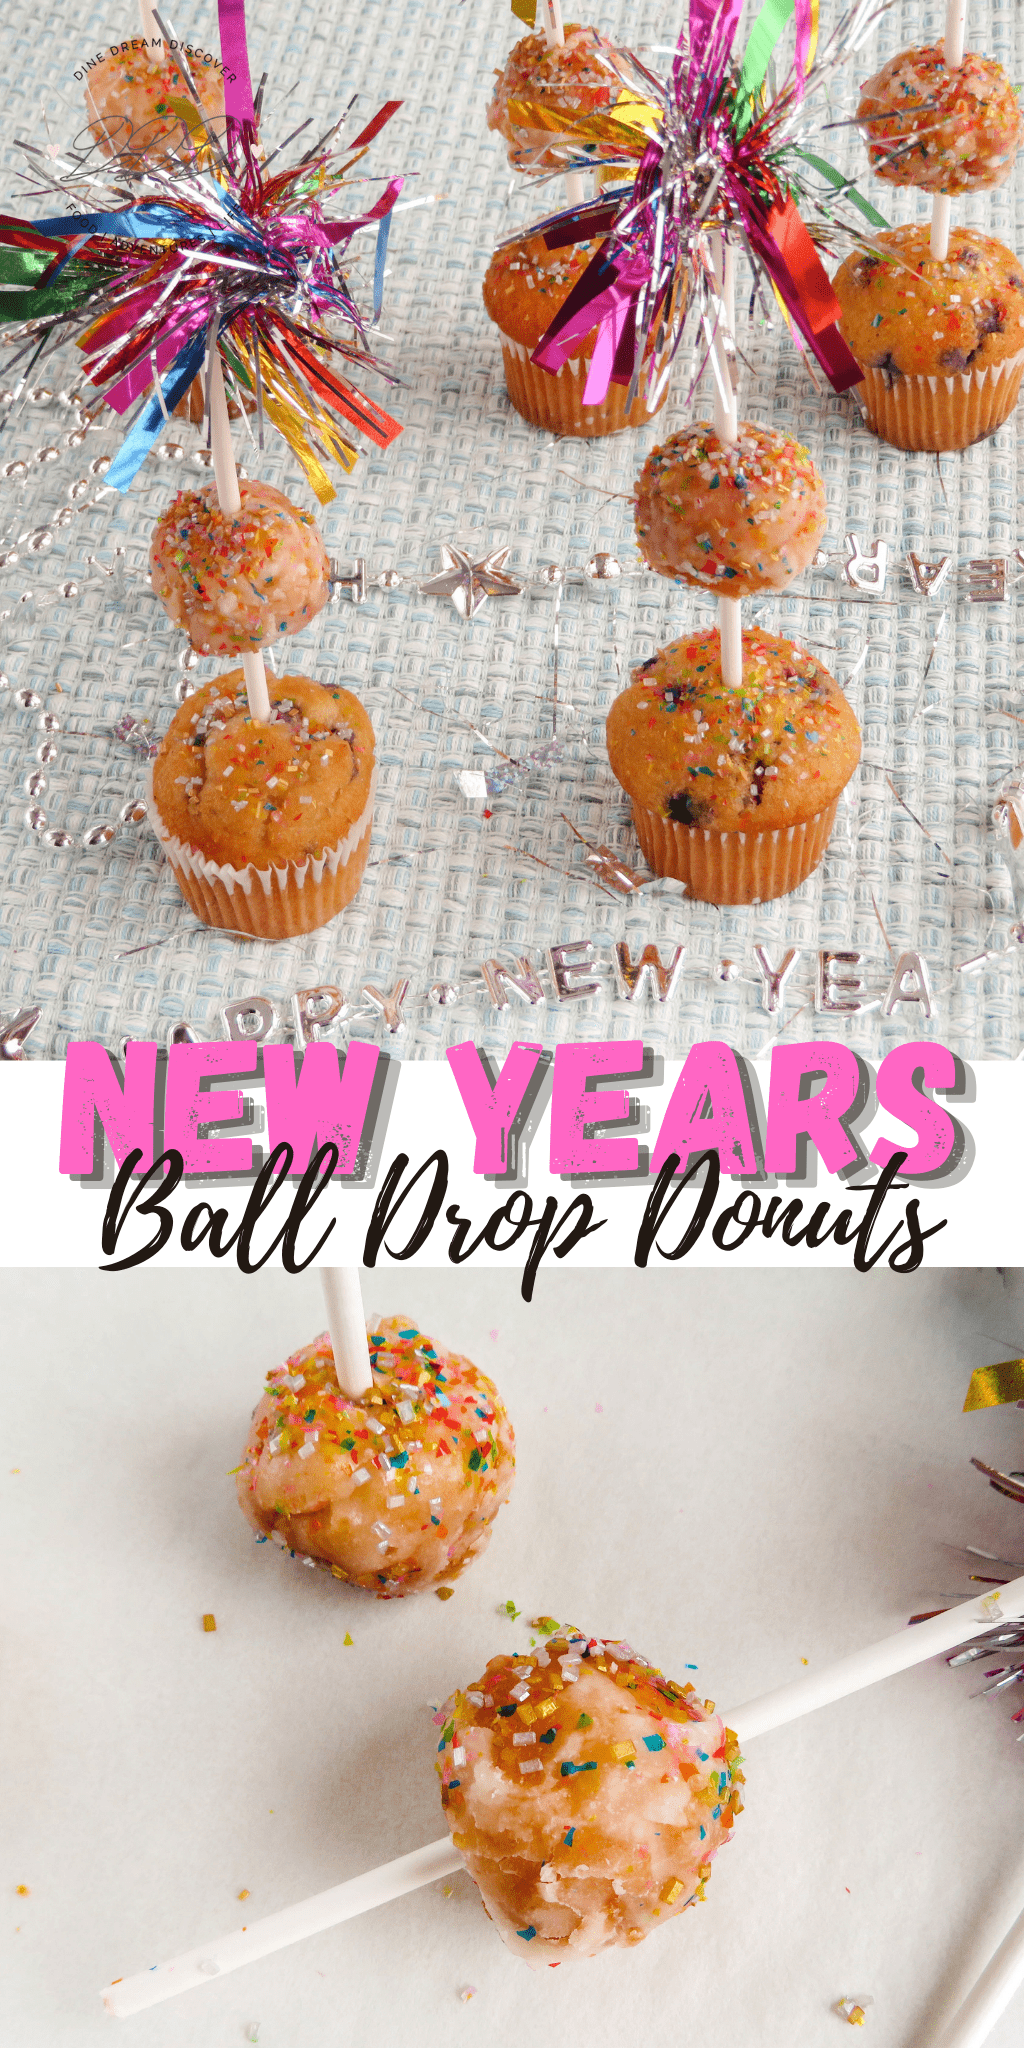 New Years Eve Ball Drop Donuts